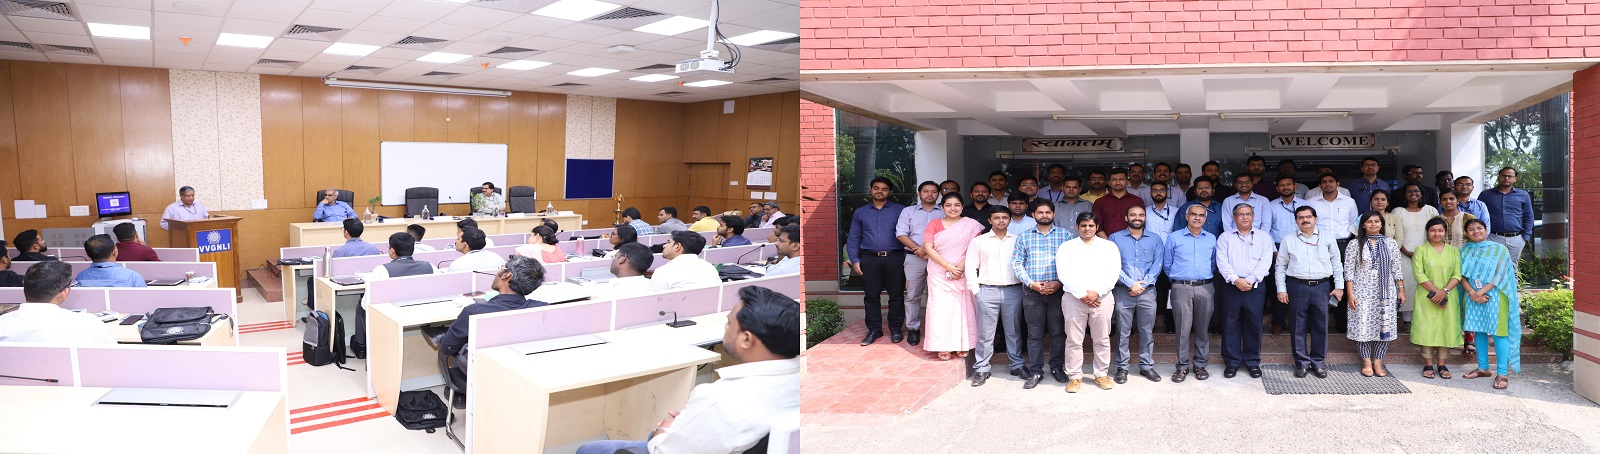 VVGNLI is conducting a training programme on 'Labour Laws and Labour Issues' for the 40 probationers of the Indian Railway Personnel Service and Indian Railway Account Service from 14th to 18th October, 2019 at VVGNLI campus. The programme was inaugurated